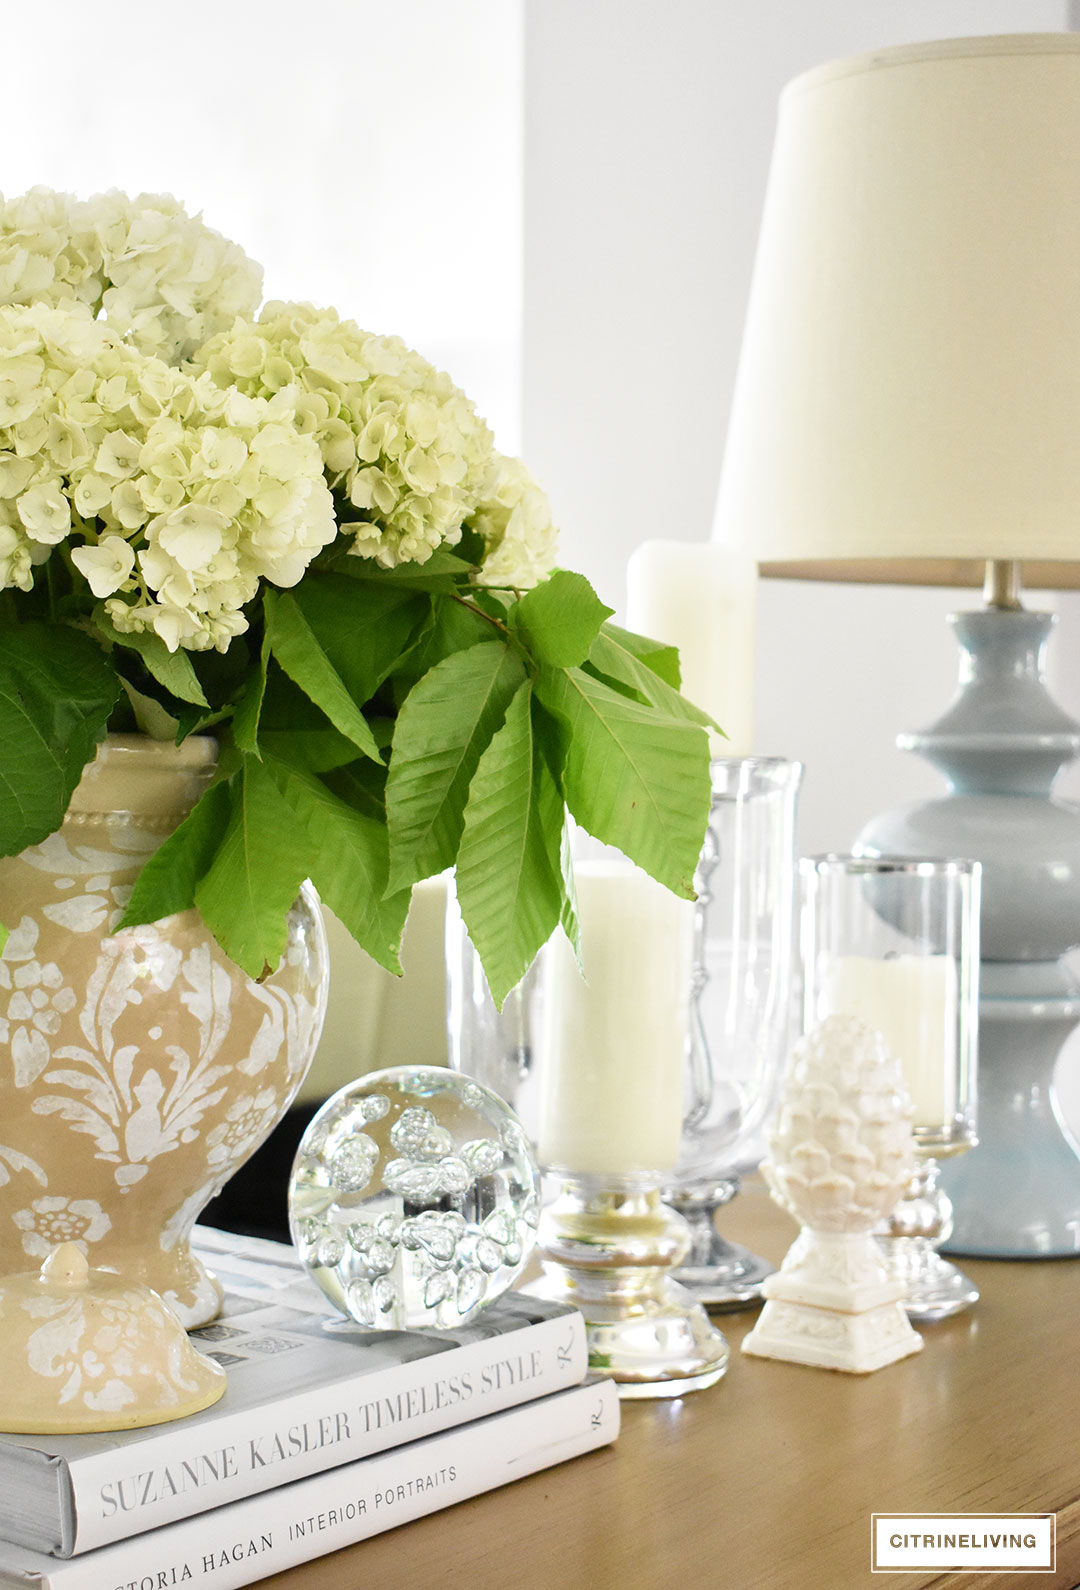 Fresh hydrangeas arranged in a classic ginger jar paired with glass hurricanes is the perfect touch of Summer decor in any room.